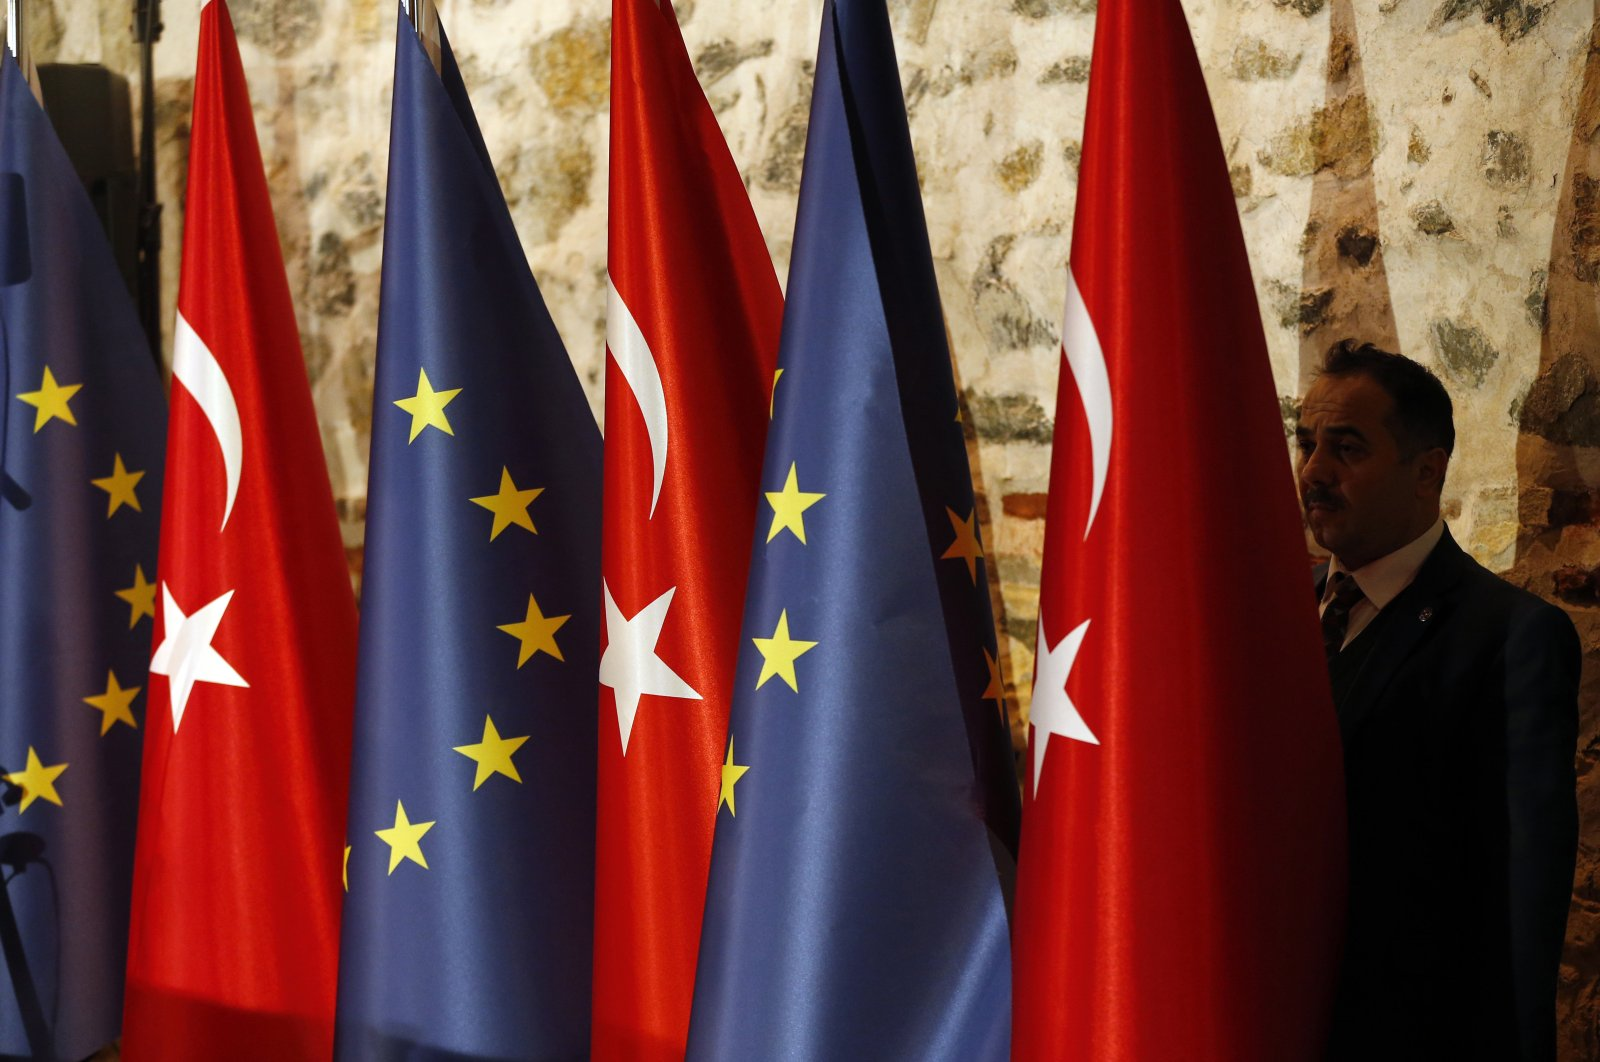 An official adjusts Turkey's and European Union's flags prior to the opening session of a high-level meeting in Istanbul, Feb. 28, 2019. (AP Photo)